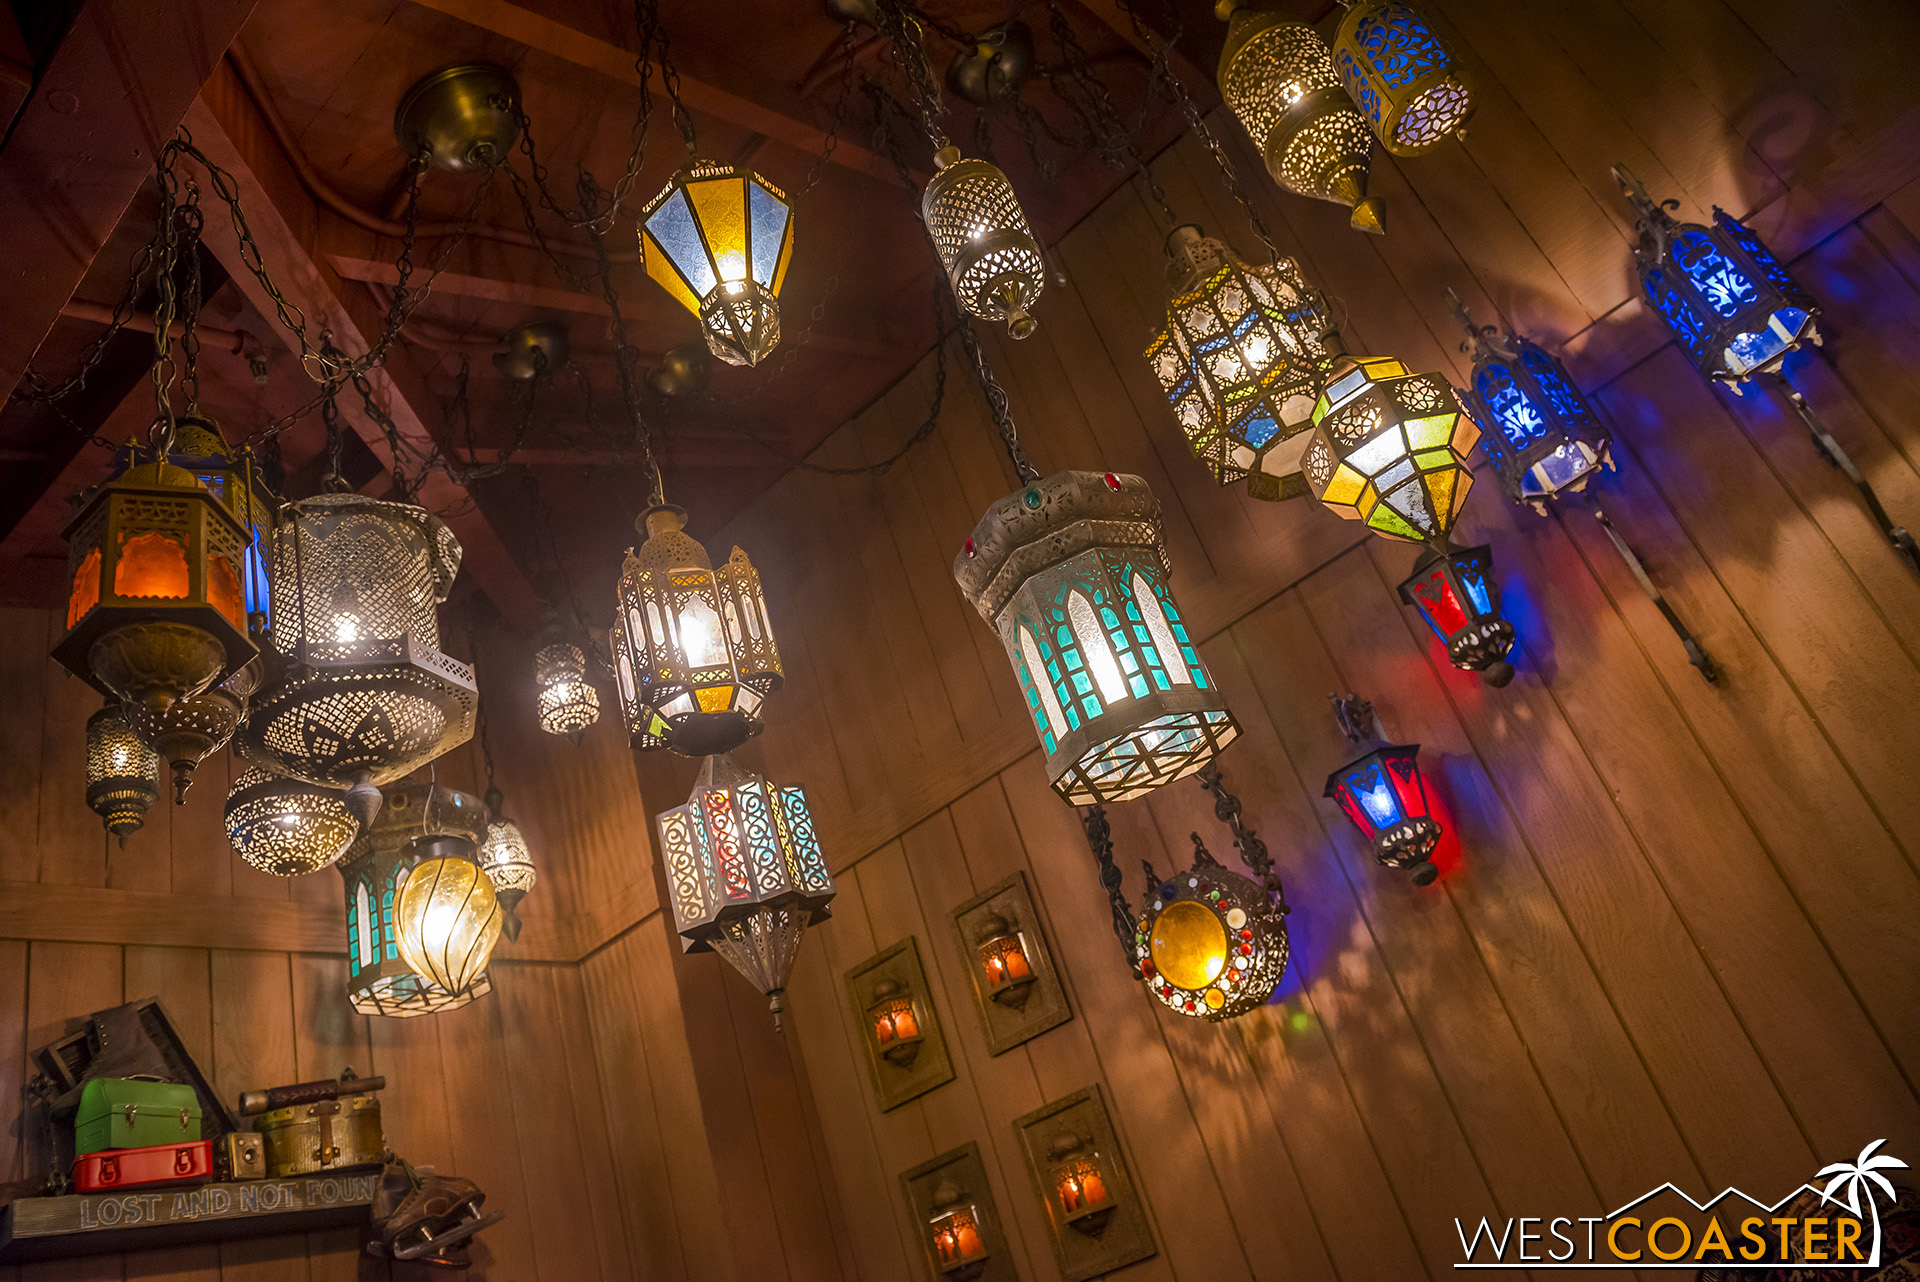 If these look familiar, they were reclaimed from the area's former use in Aladdin's Oasis.